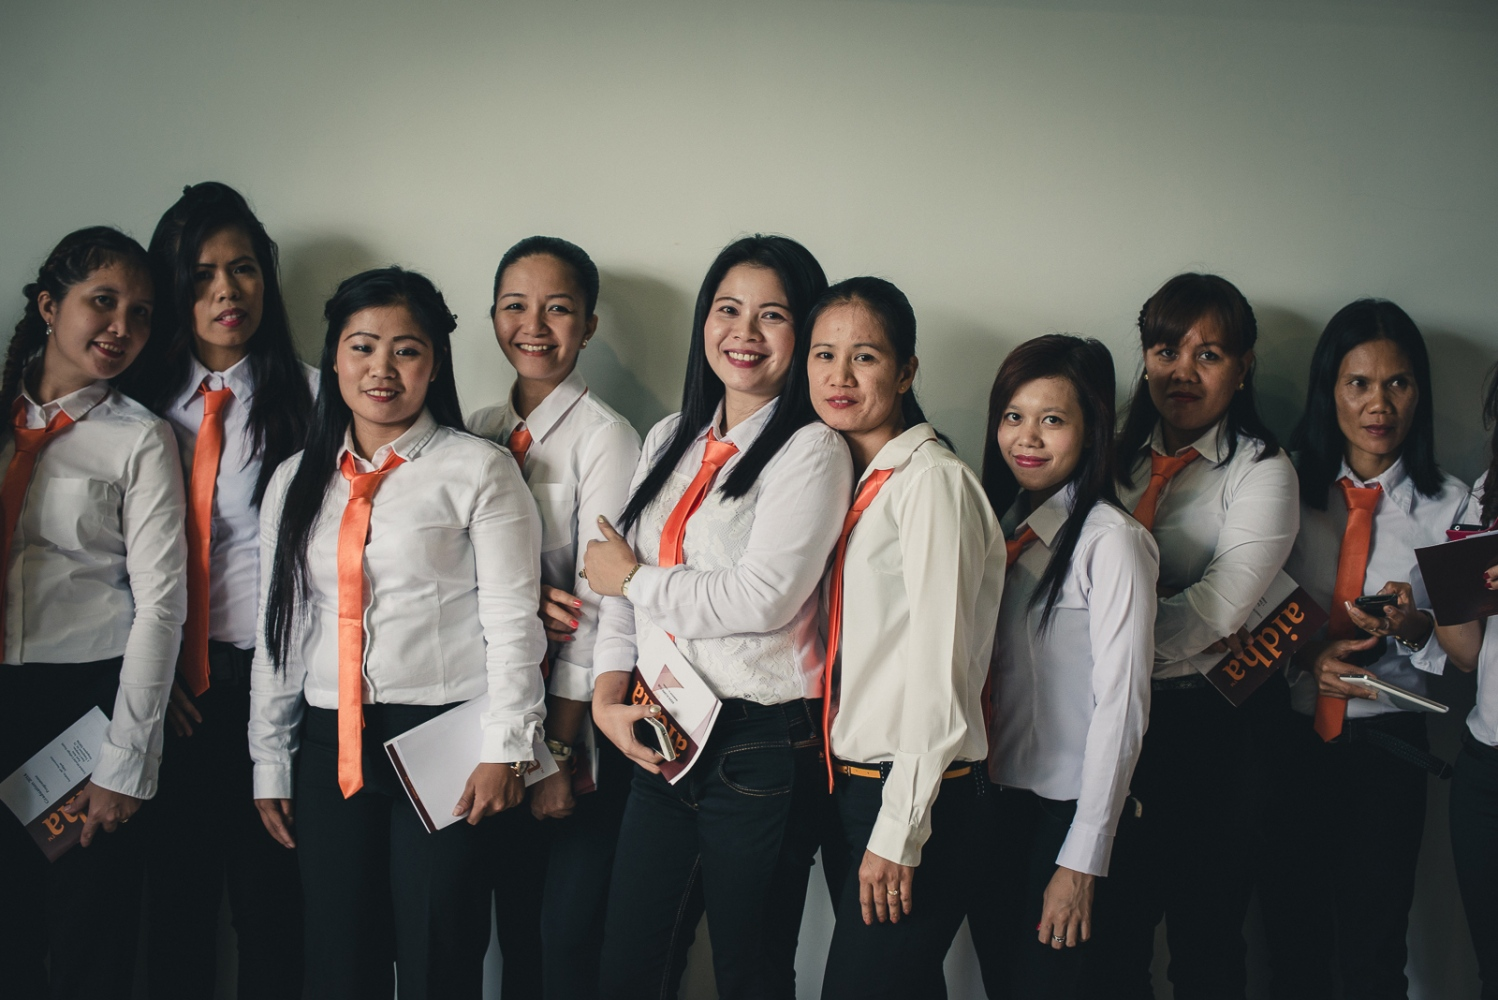 Foreign domestic workers pose on the occasion of their graduation ceremony from Aidha, a micro business school for foreign domestic workers in Singapore.